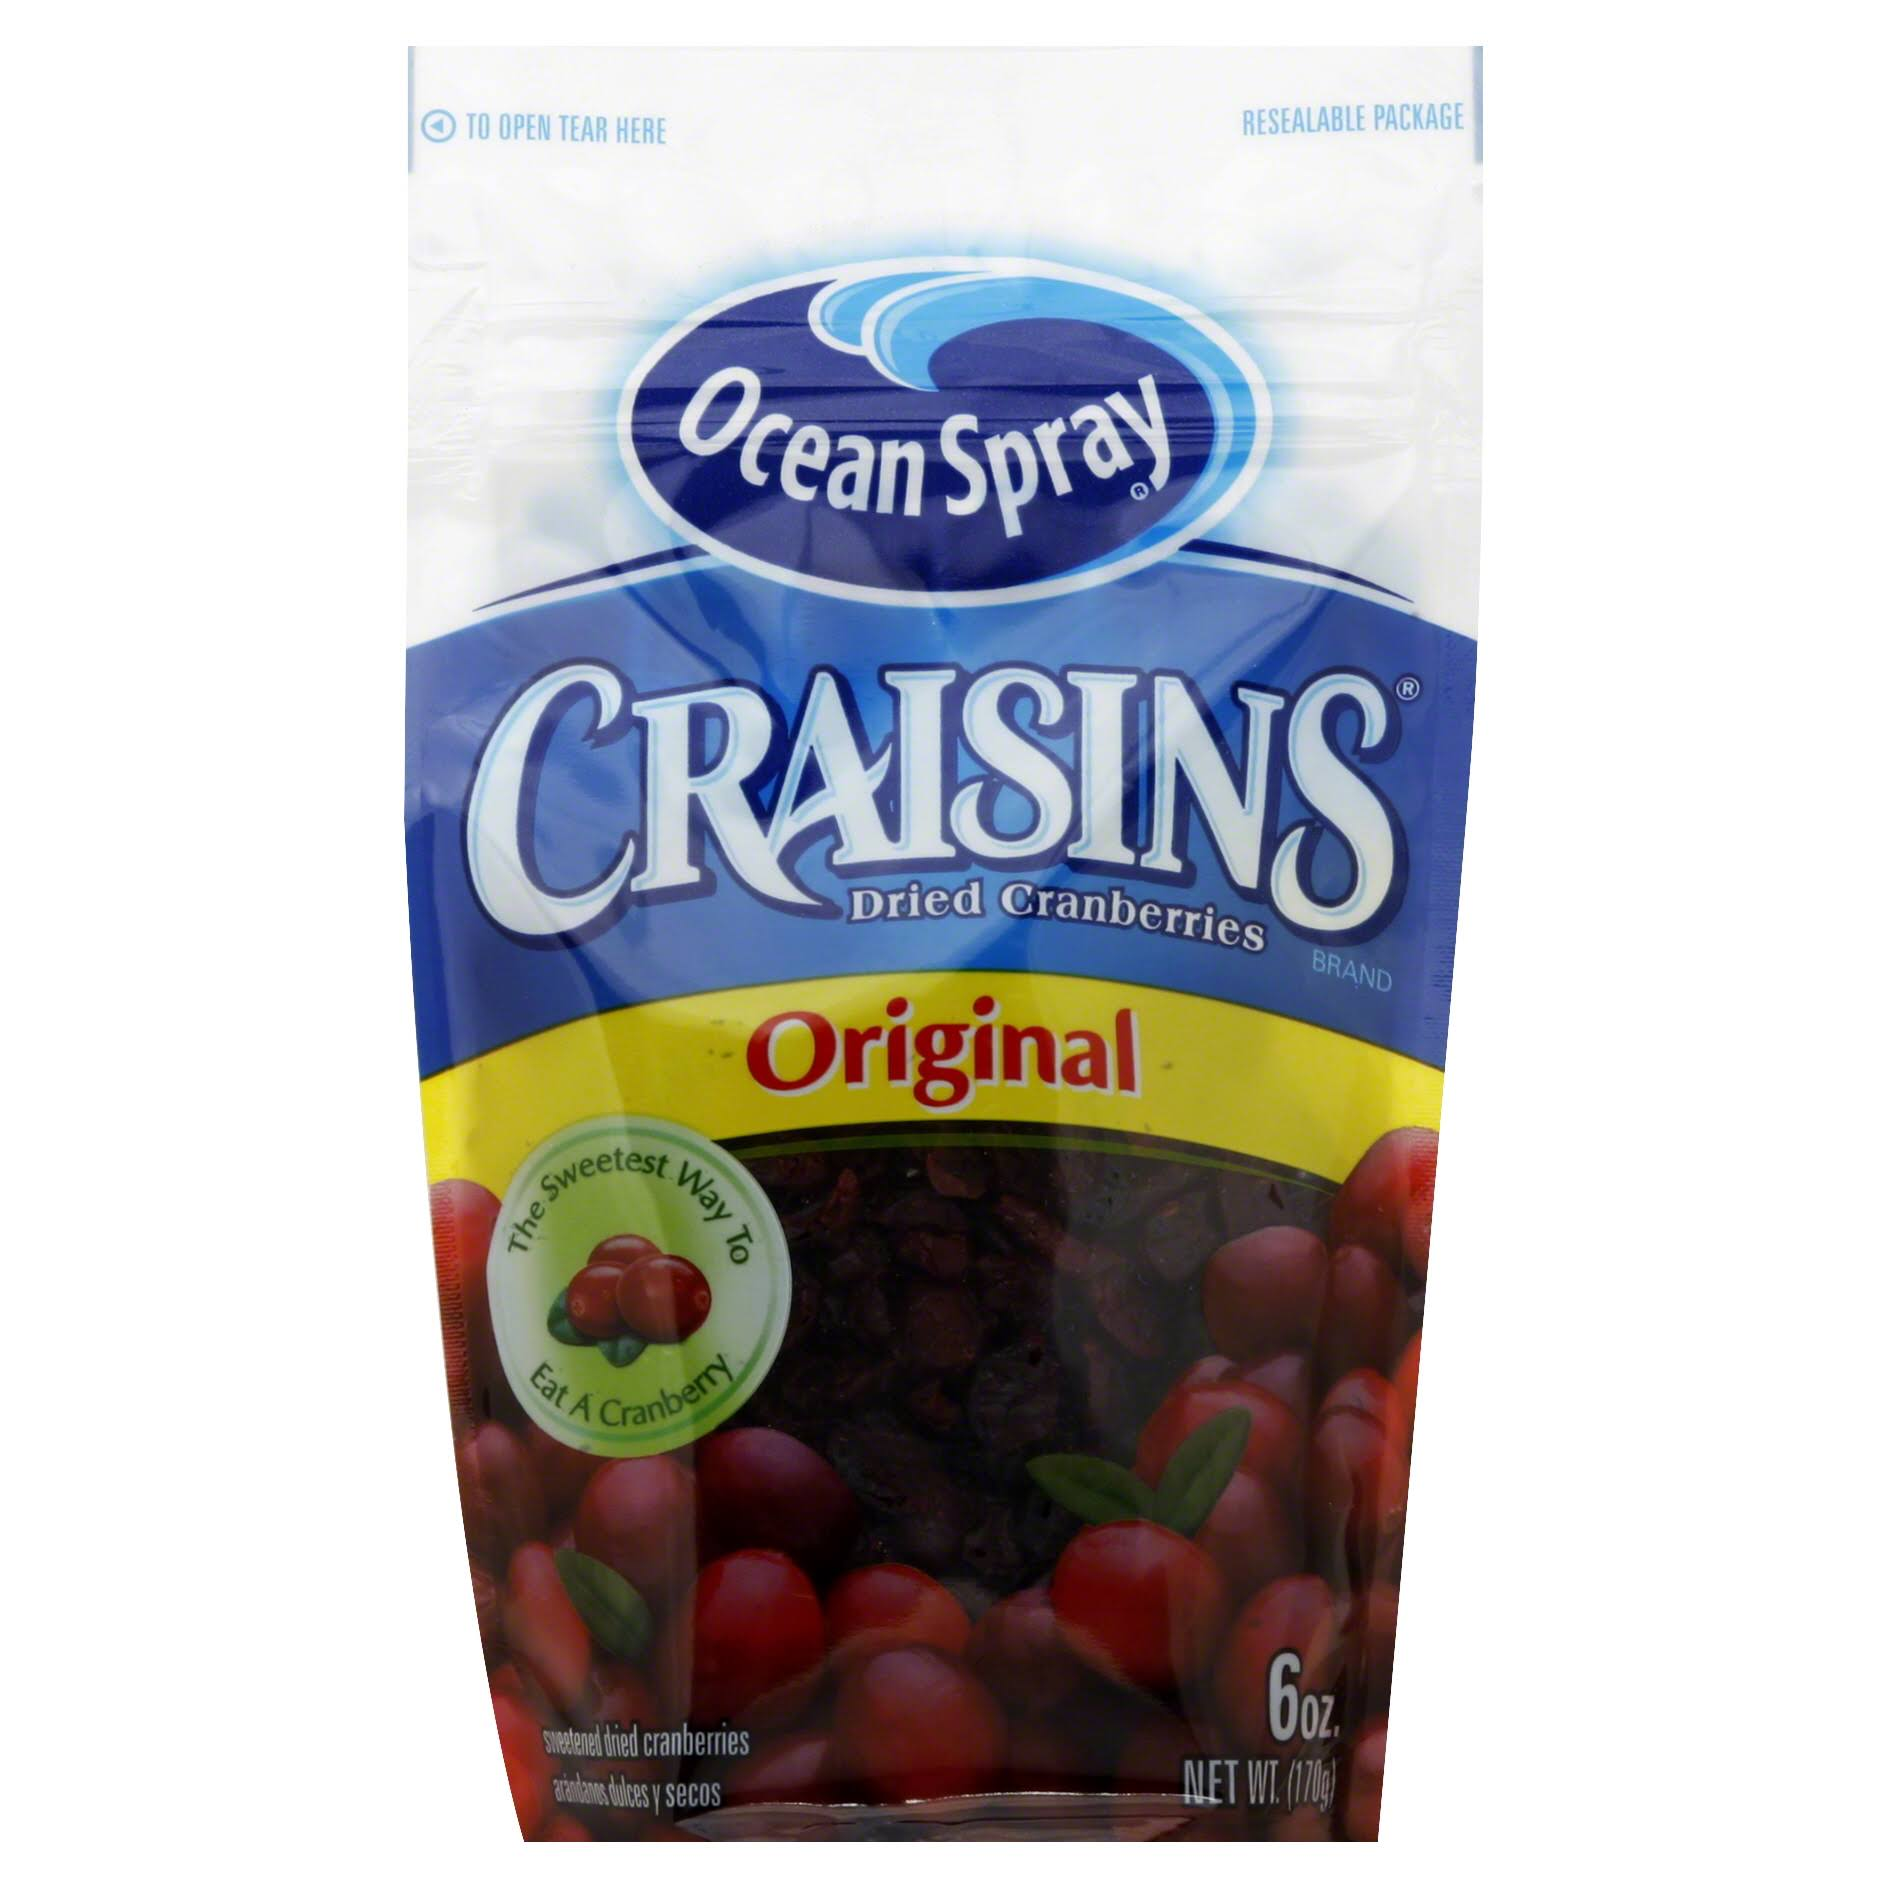 Ocean Spray Craisins Original Dried Cranberries - 6oz